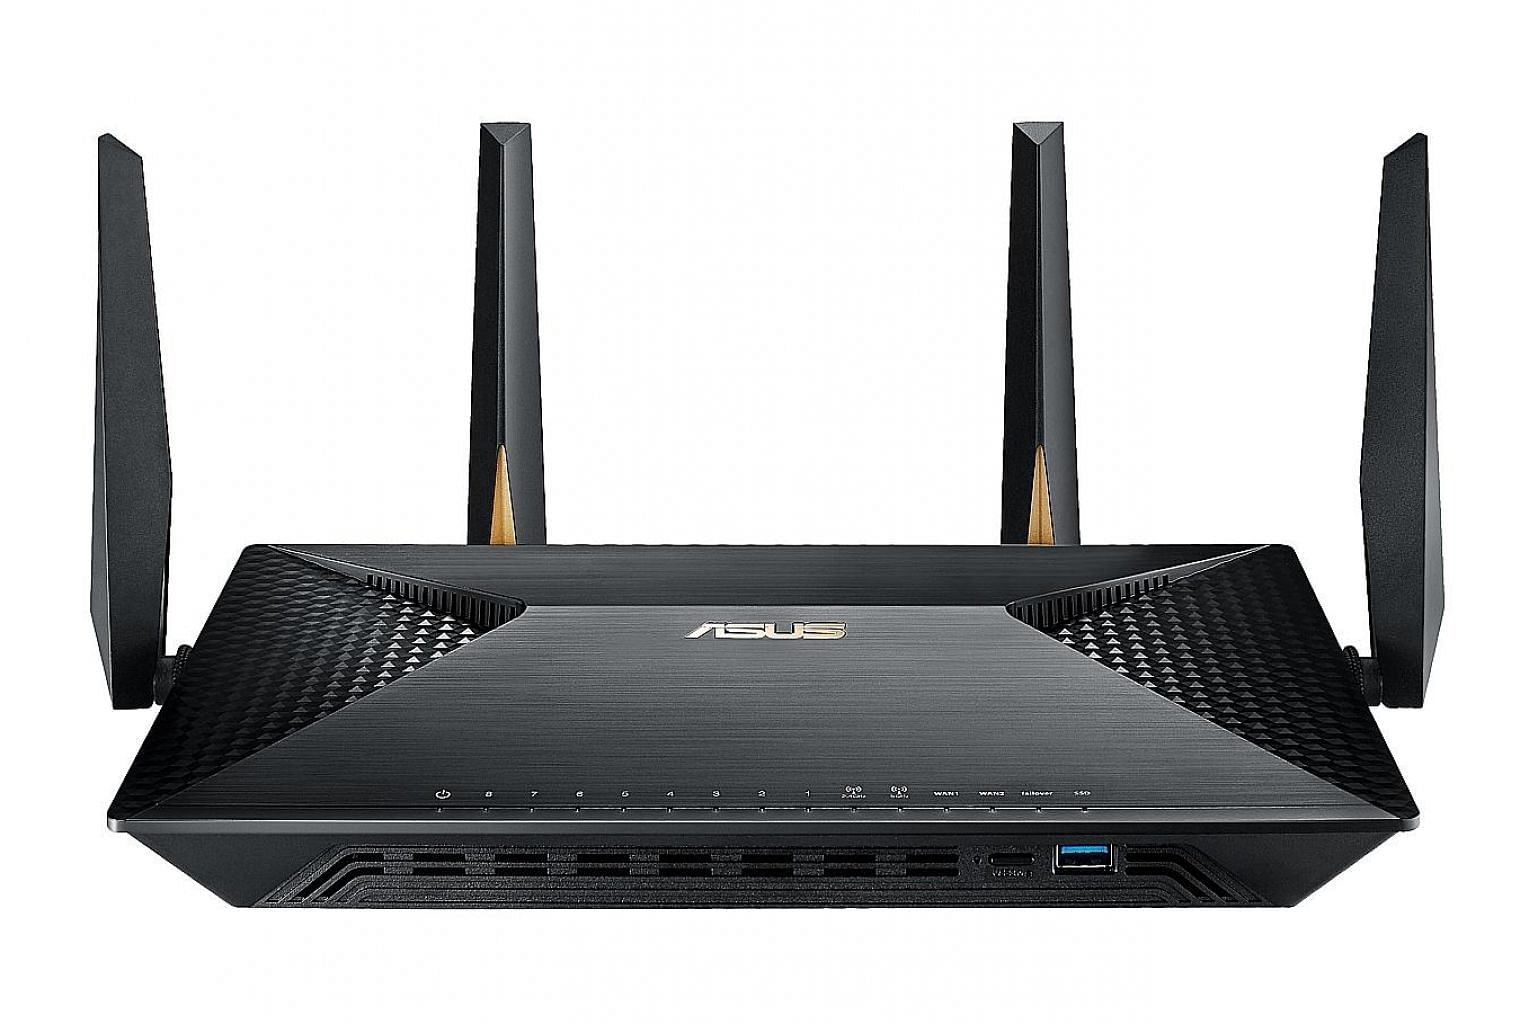 With the Asus BRT-AC828, users can remotely access the business' internal network in a secure manner because the router supports IPsec VPN.